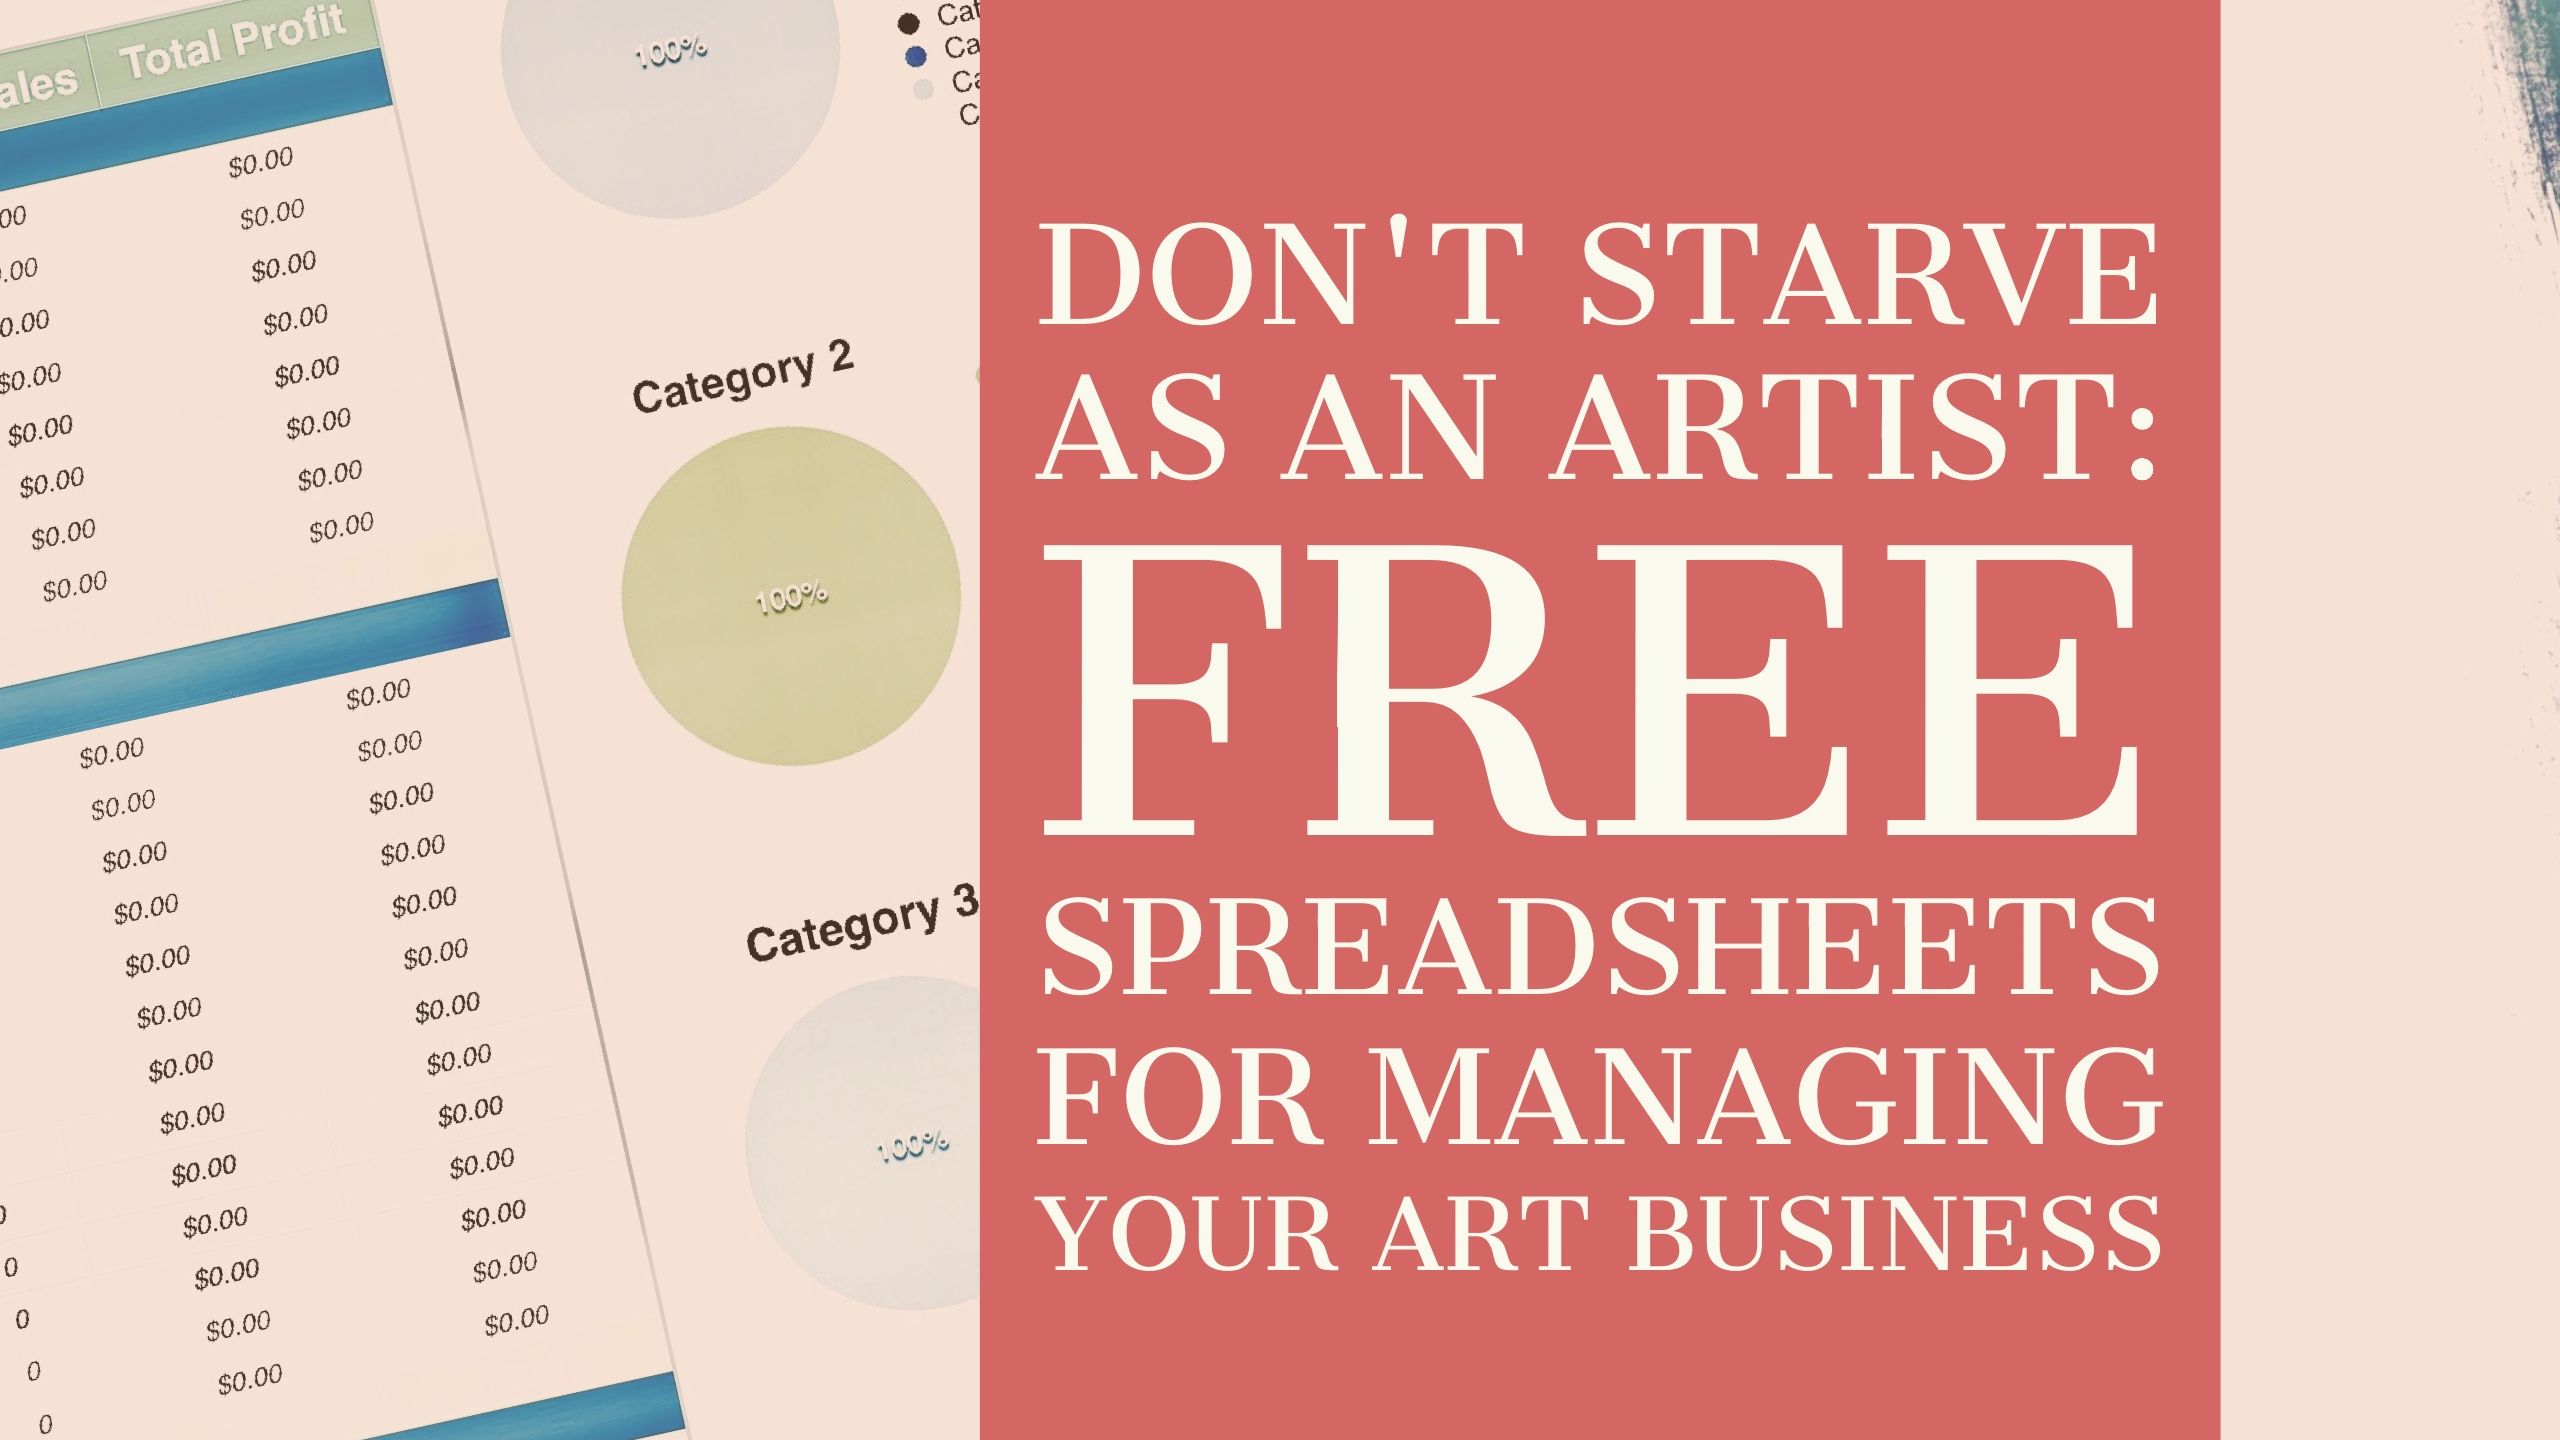 Don't Starve as an Artist: Free Spreadsheets for Managing Your Art Business.